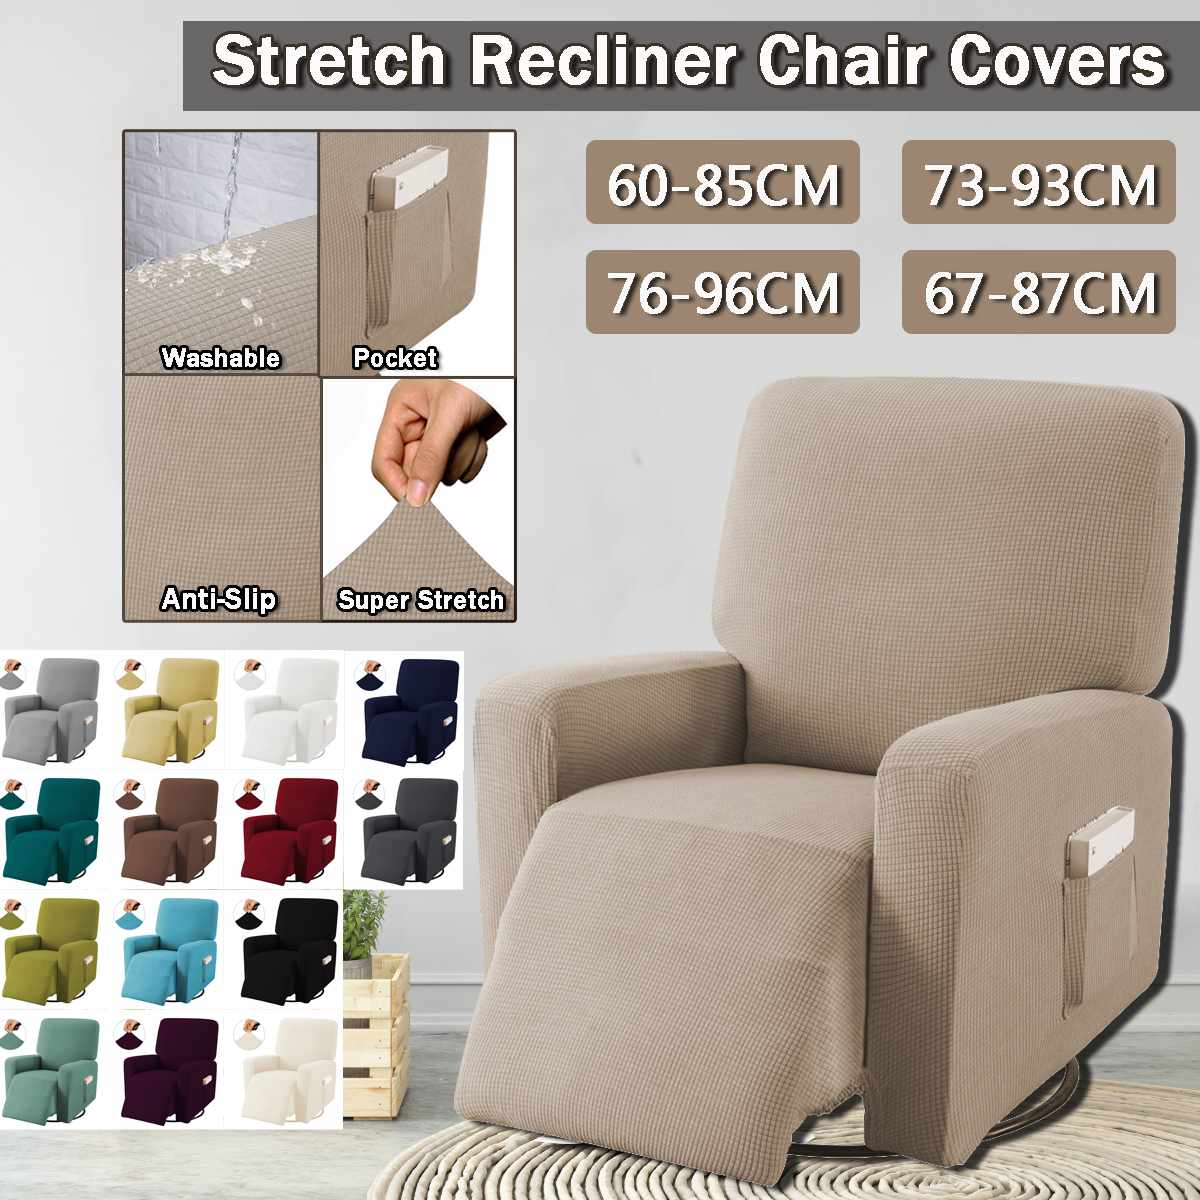 Stretch Sofa Cover Elastic Couch Cover Sofa Covers For Living Room Pets Slipcover Sofa Recliner Chair Covers